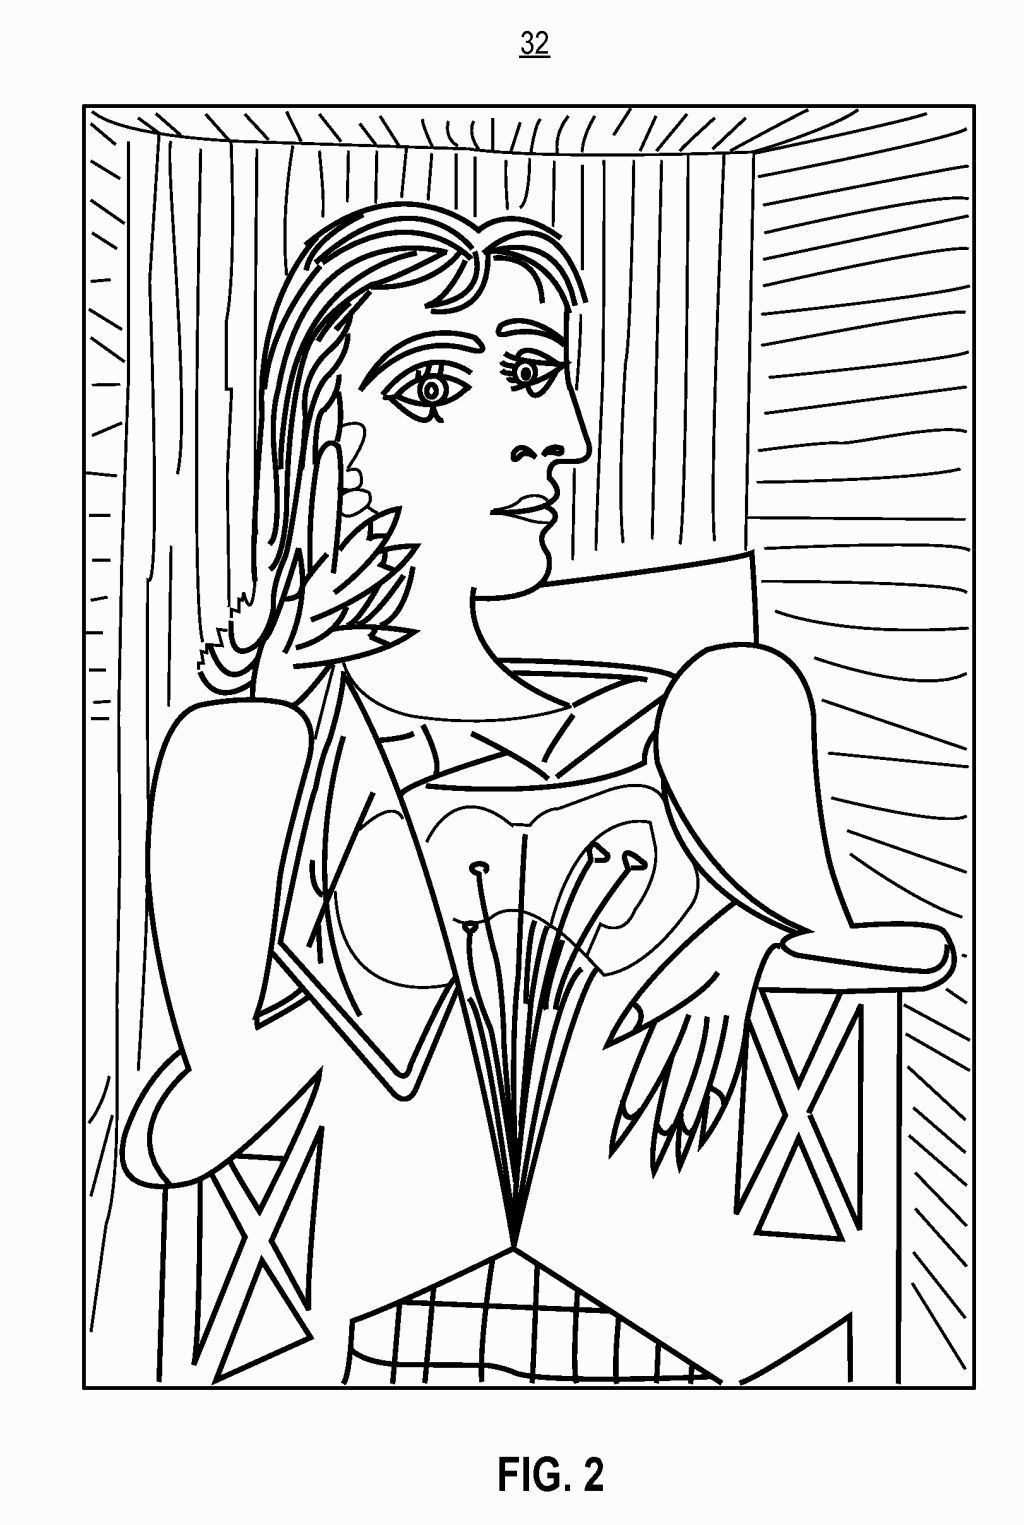 picasso coloring pages Pablo Picasso Coloring Pages | Spanish program | Pinterest | Arte  picasso coloring pages